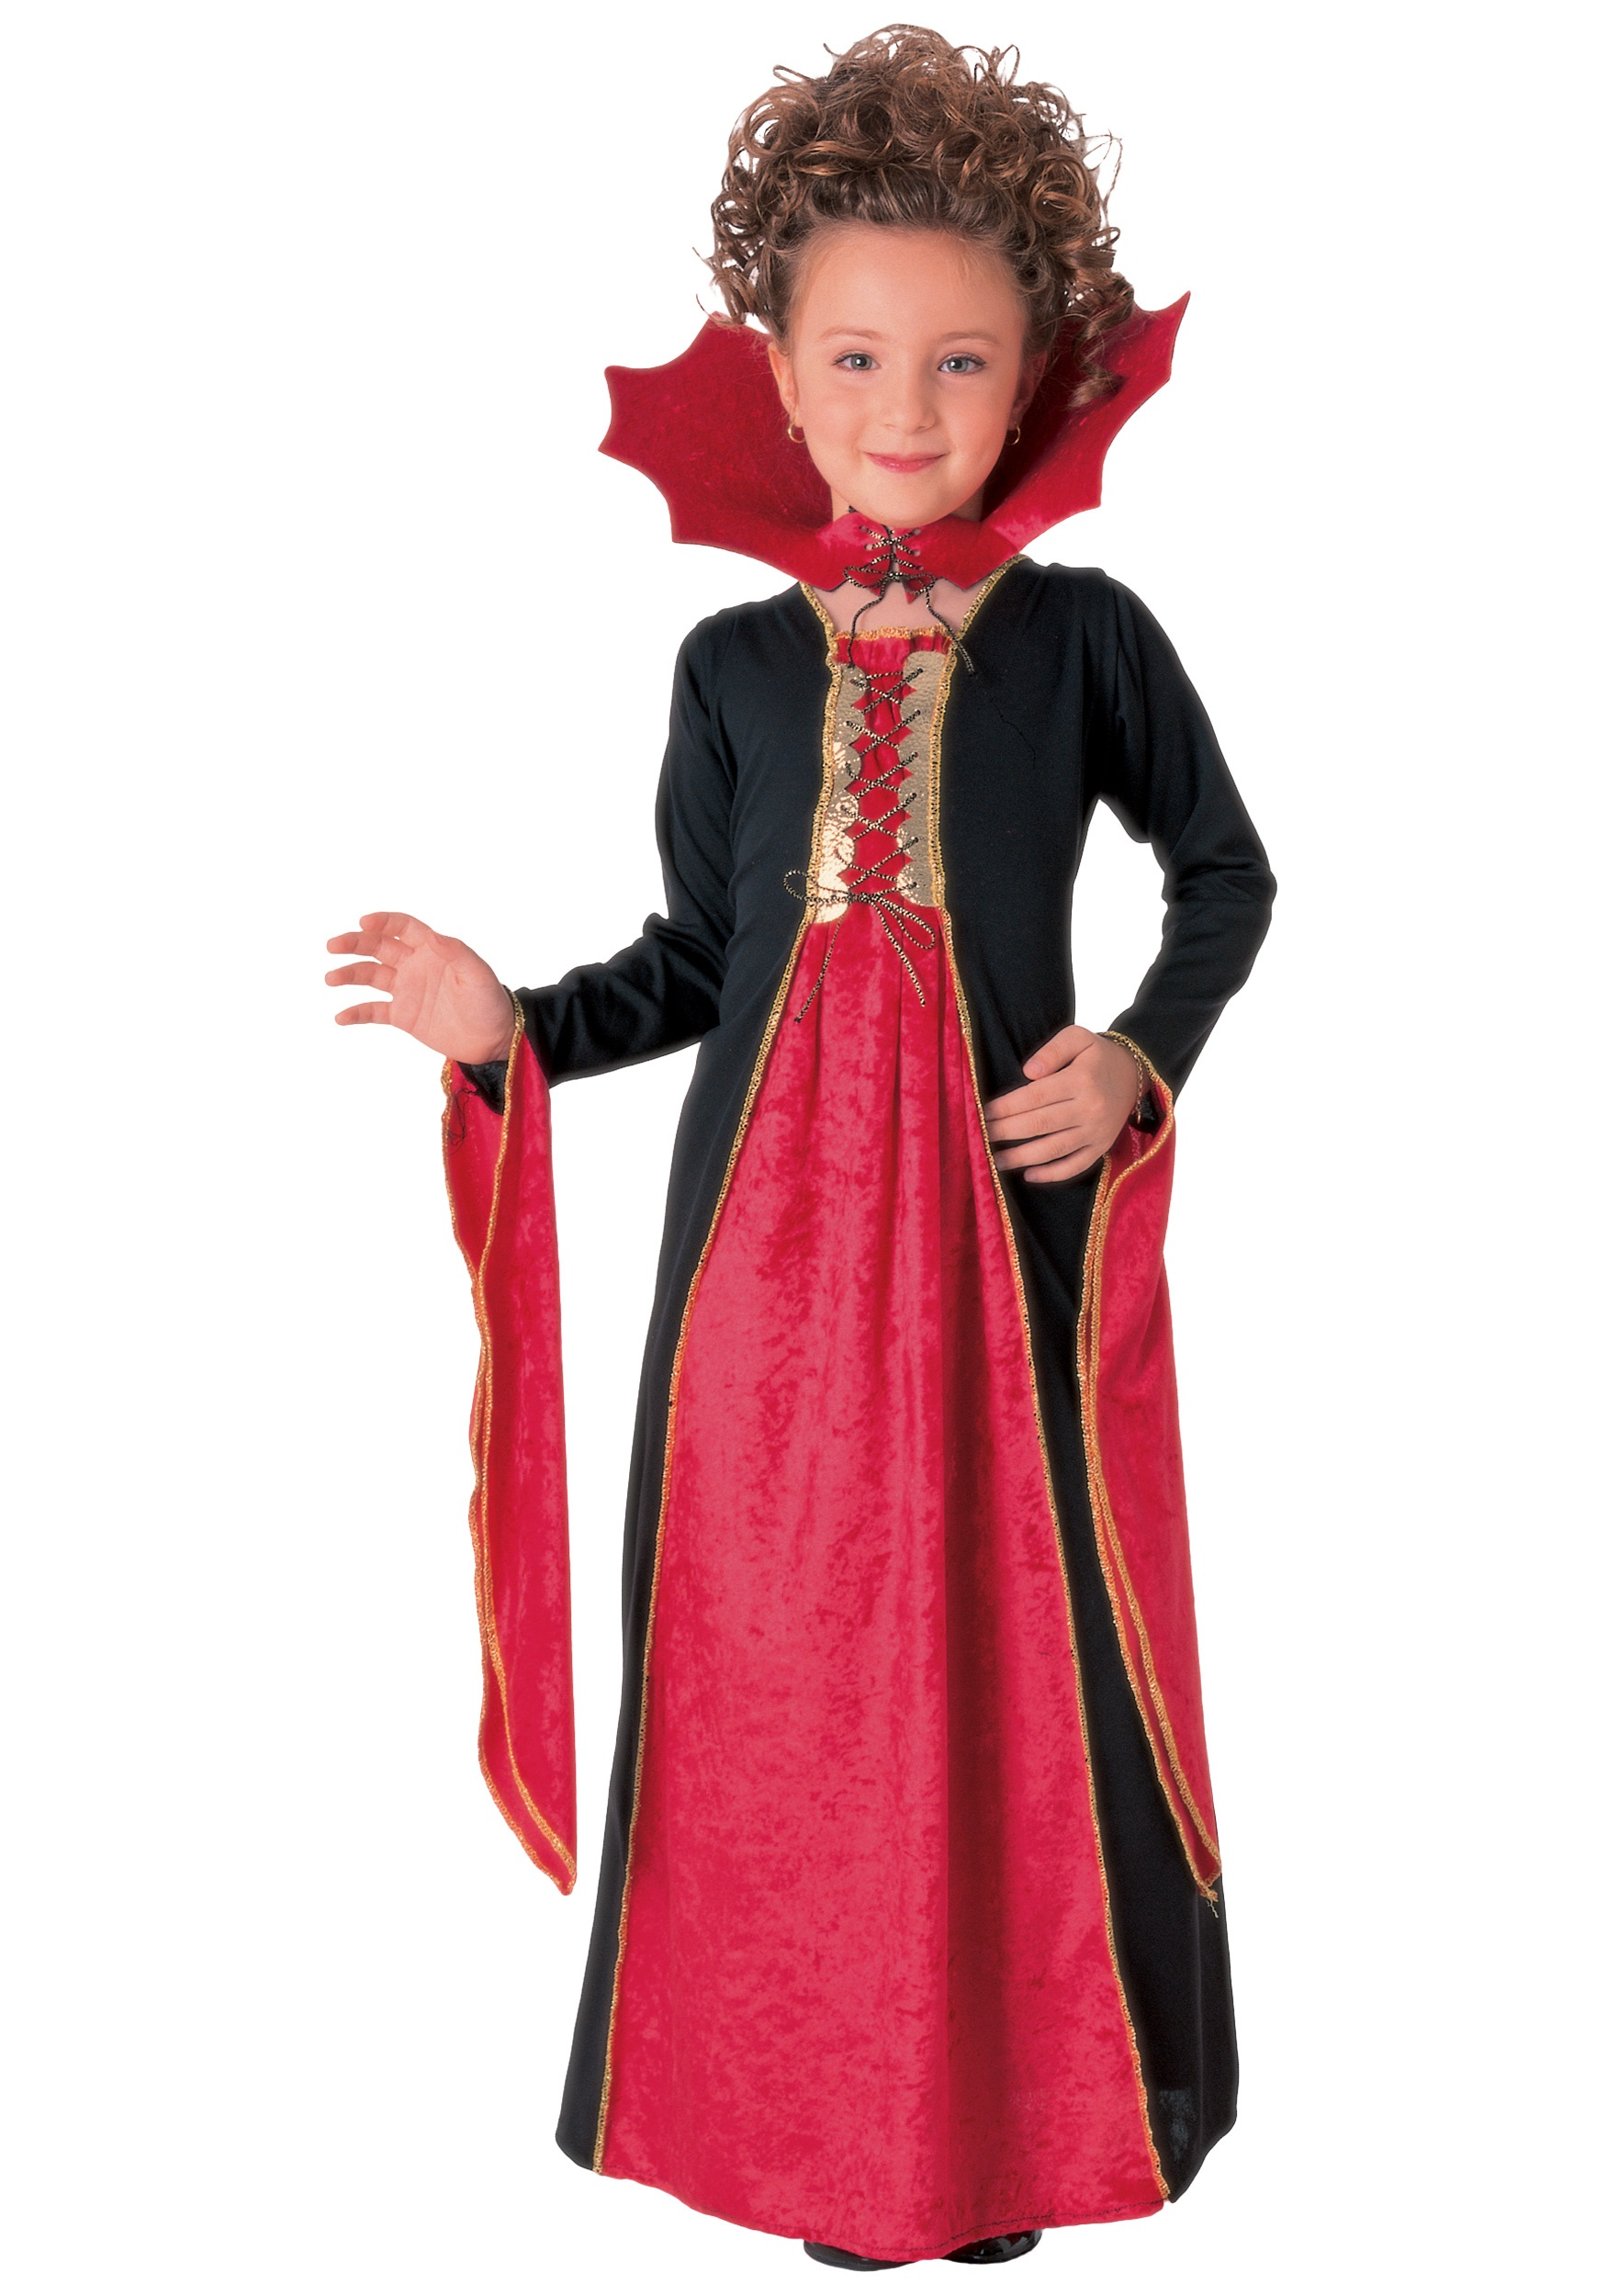 0b6a904a08 Child Gothic Vampiress Costume - Girls Vampire Costumes